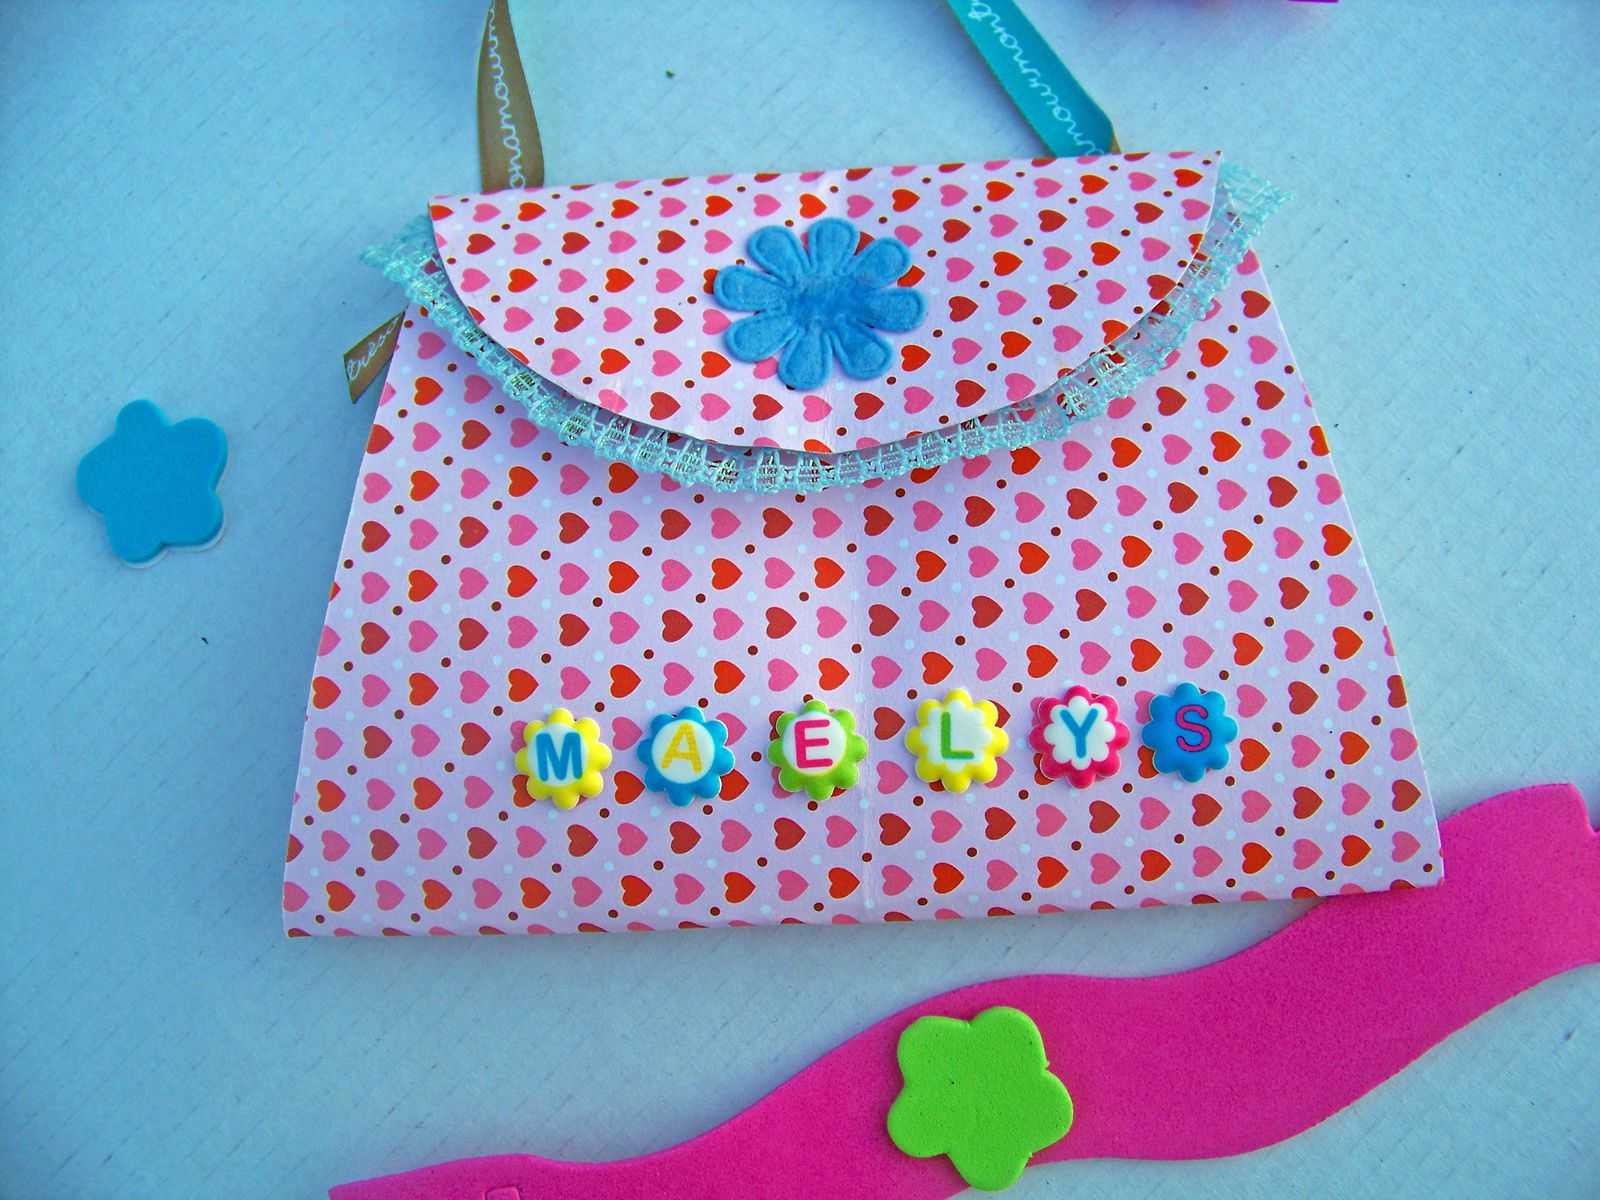 Forme sac à main pour carte girly !